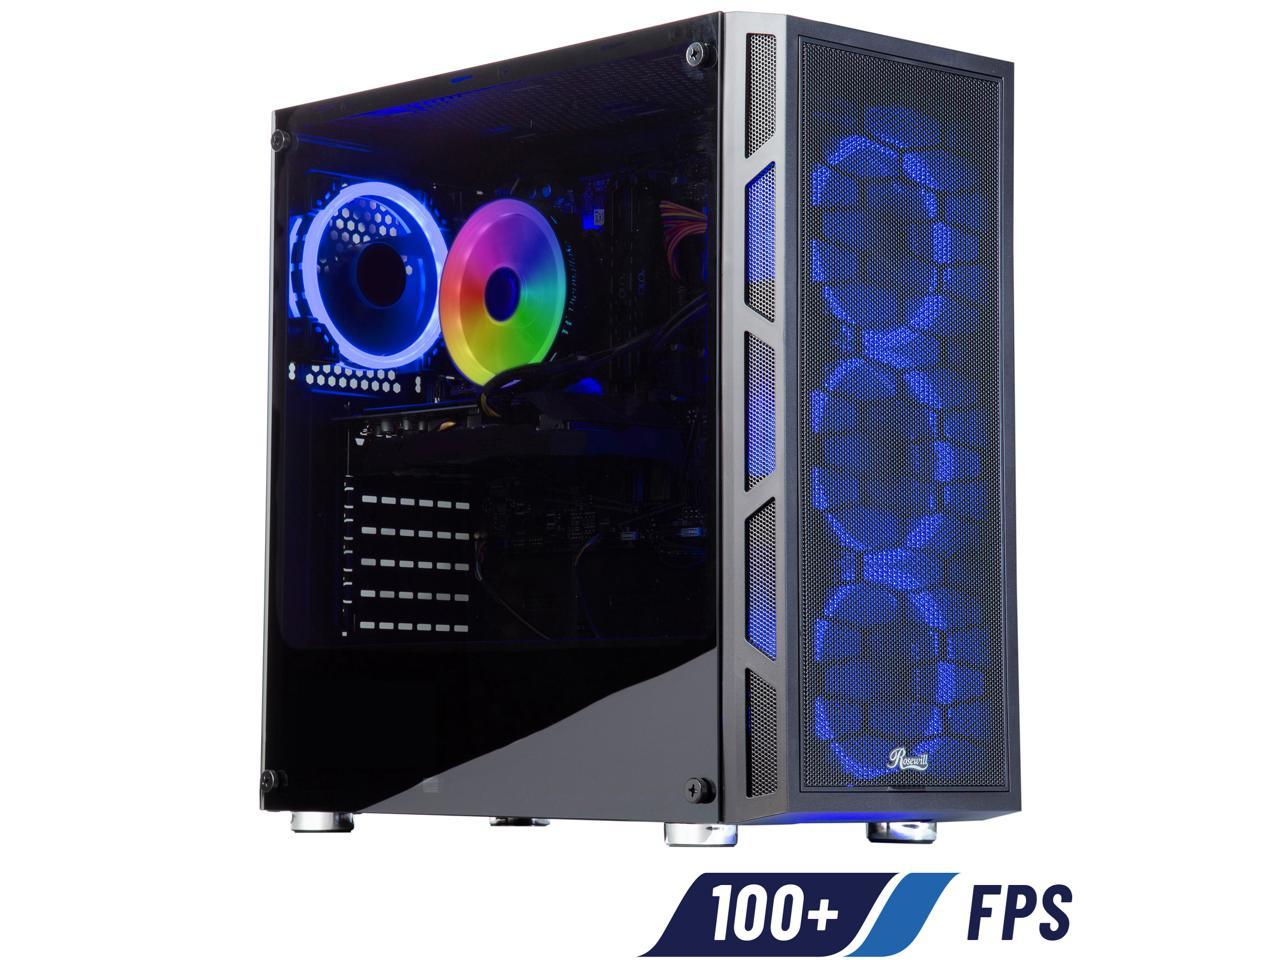 ABS Challenger Intel i5 10400F GeForce GTX 1660 SUPER 16GB DDR4 RAM 512GB SSD Gaming Desktop